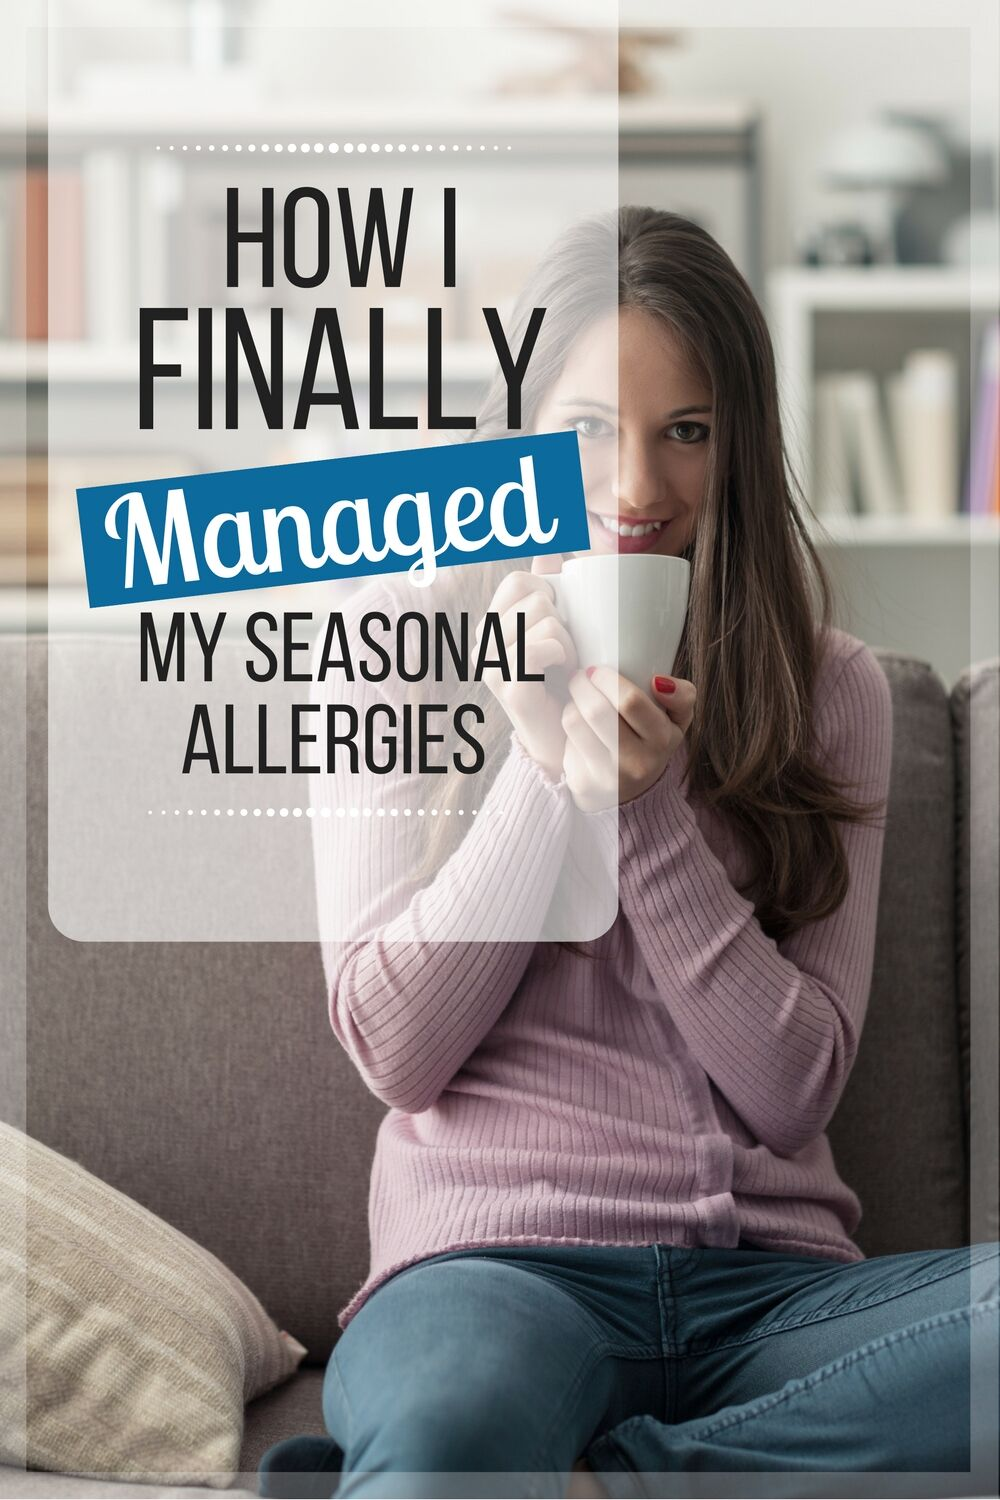 Seasonal Allergy Relief: I'm so grateful I came across this post - my allergies are unbearable some days! Hoping this might finally get me the relief I need.